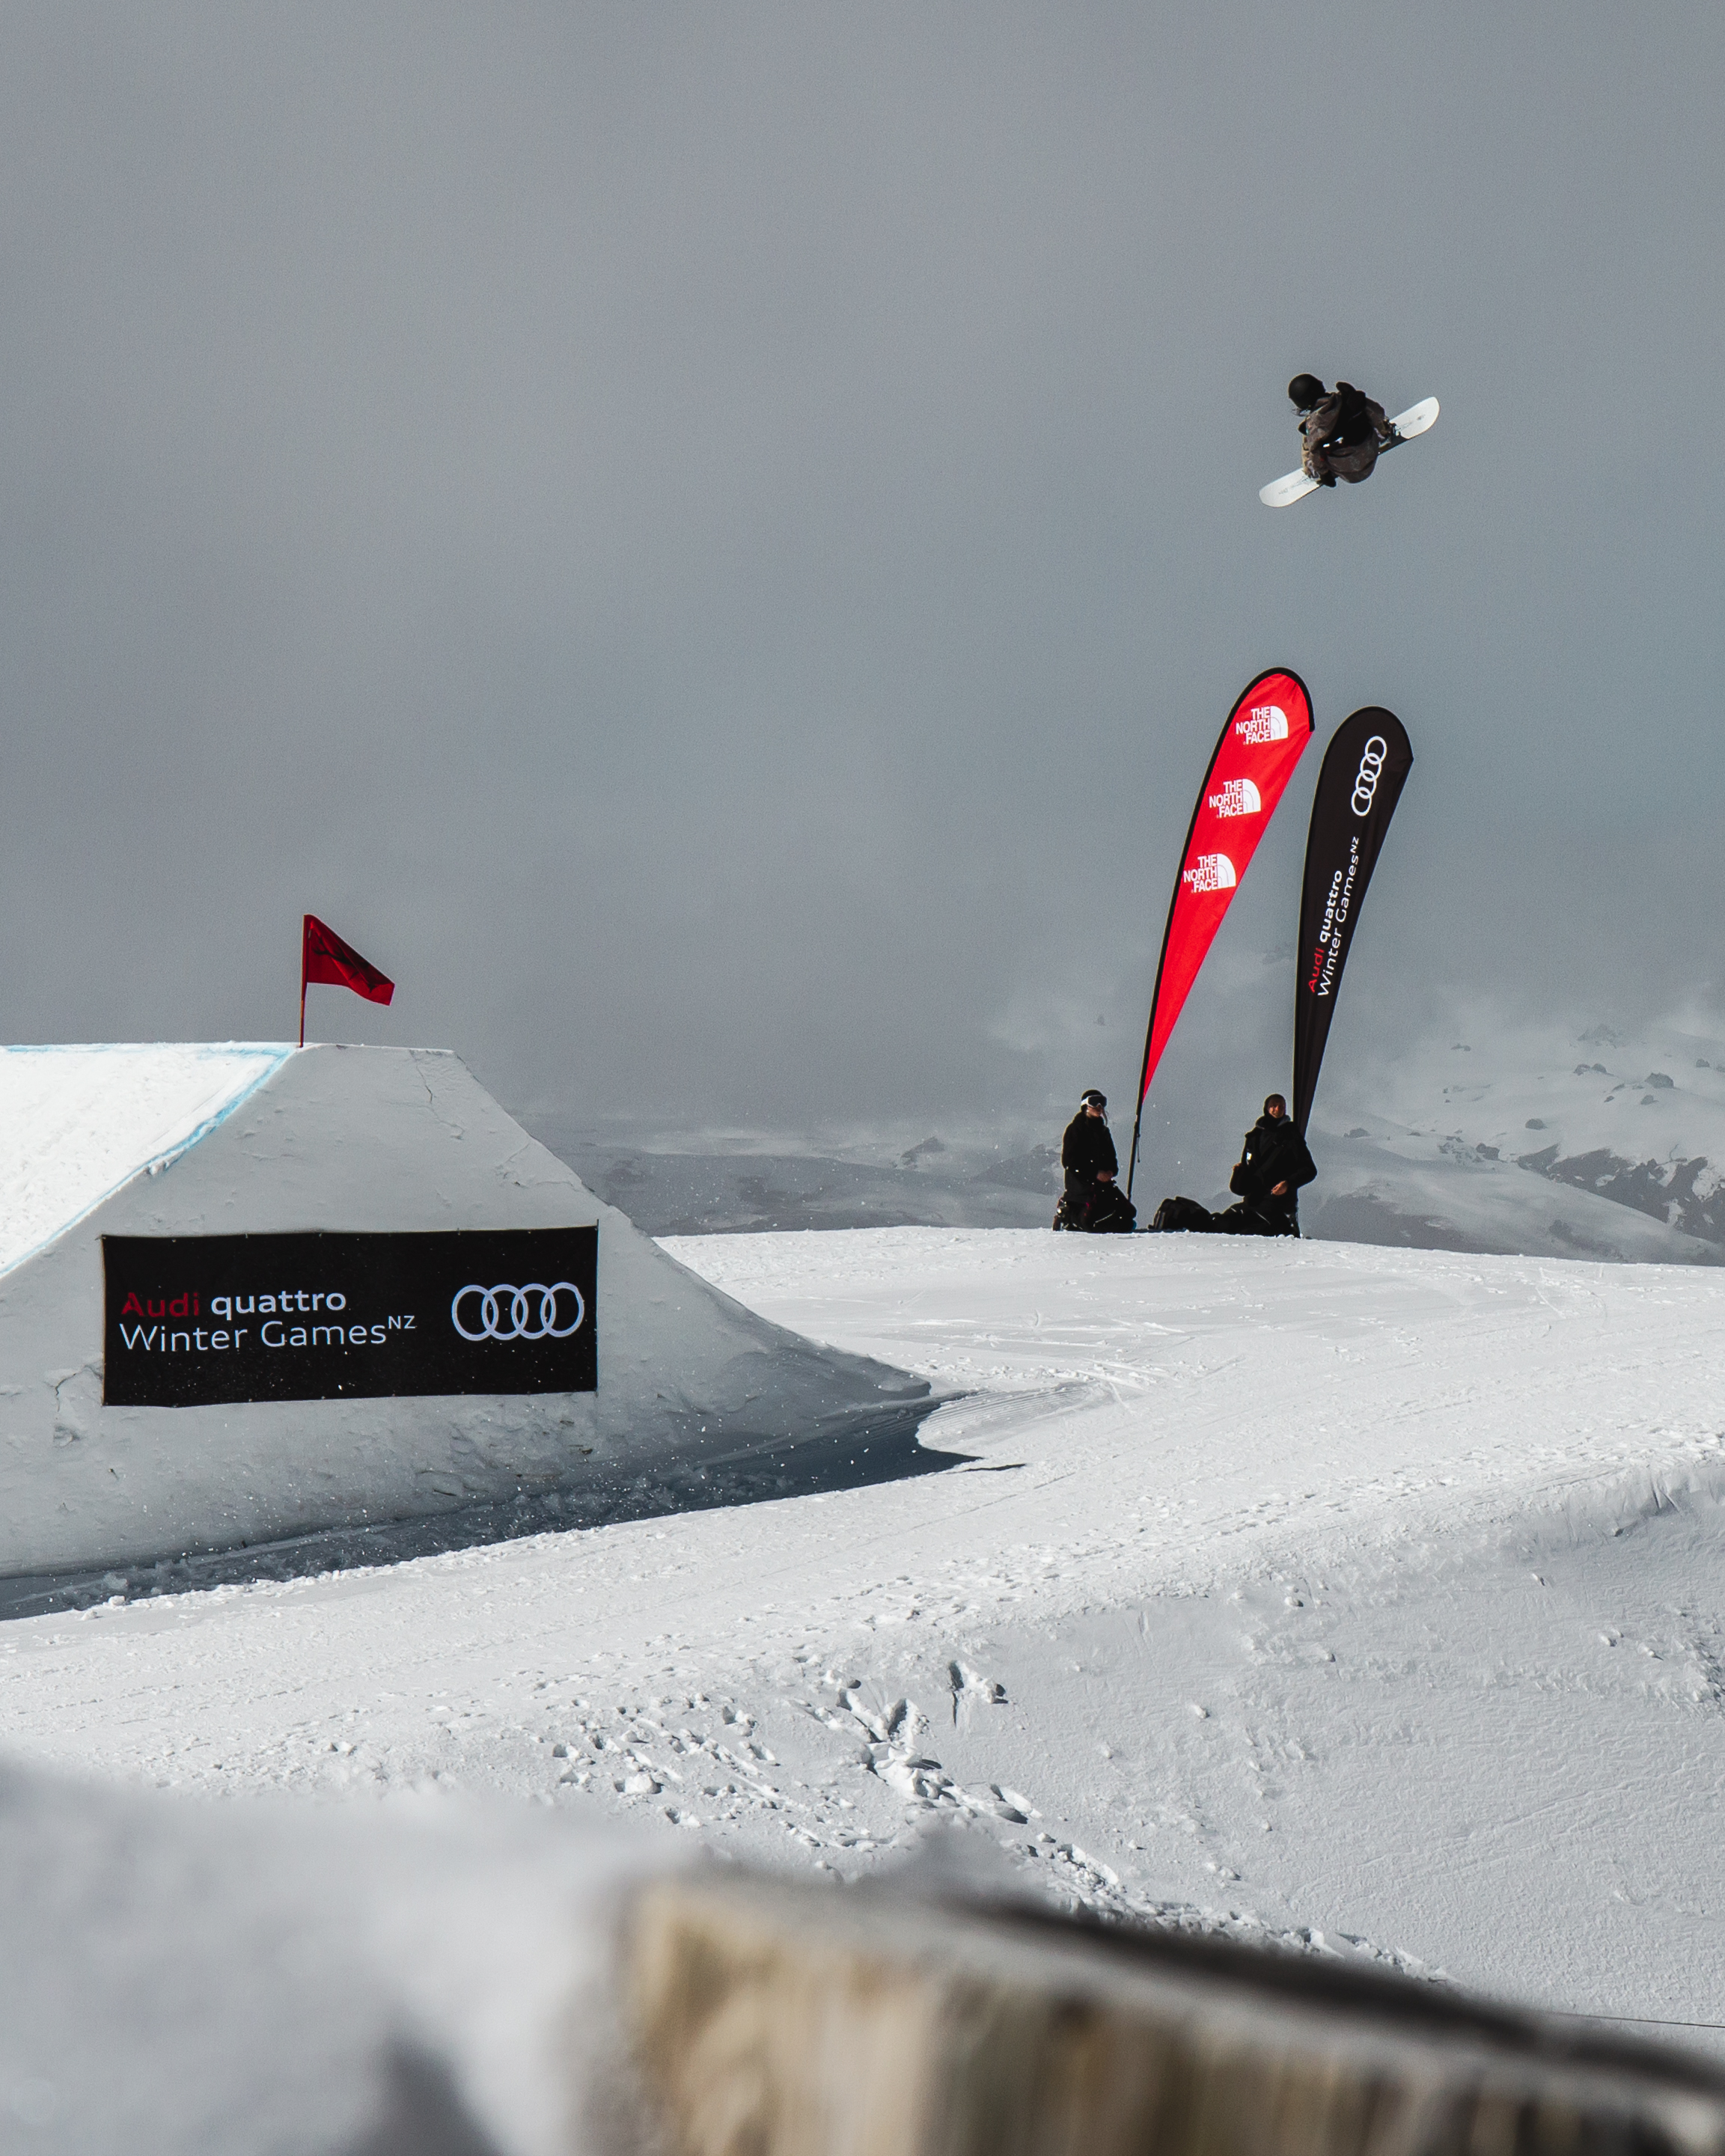 Kokomo Murase, frontside 1080 on the last hit to qualify 1st in World Cup Championships slopestyle at Cardrona.